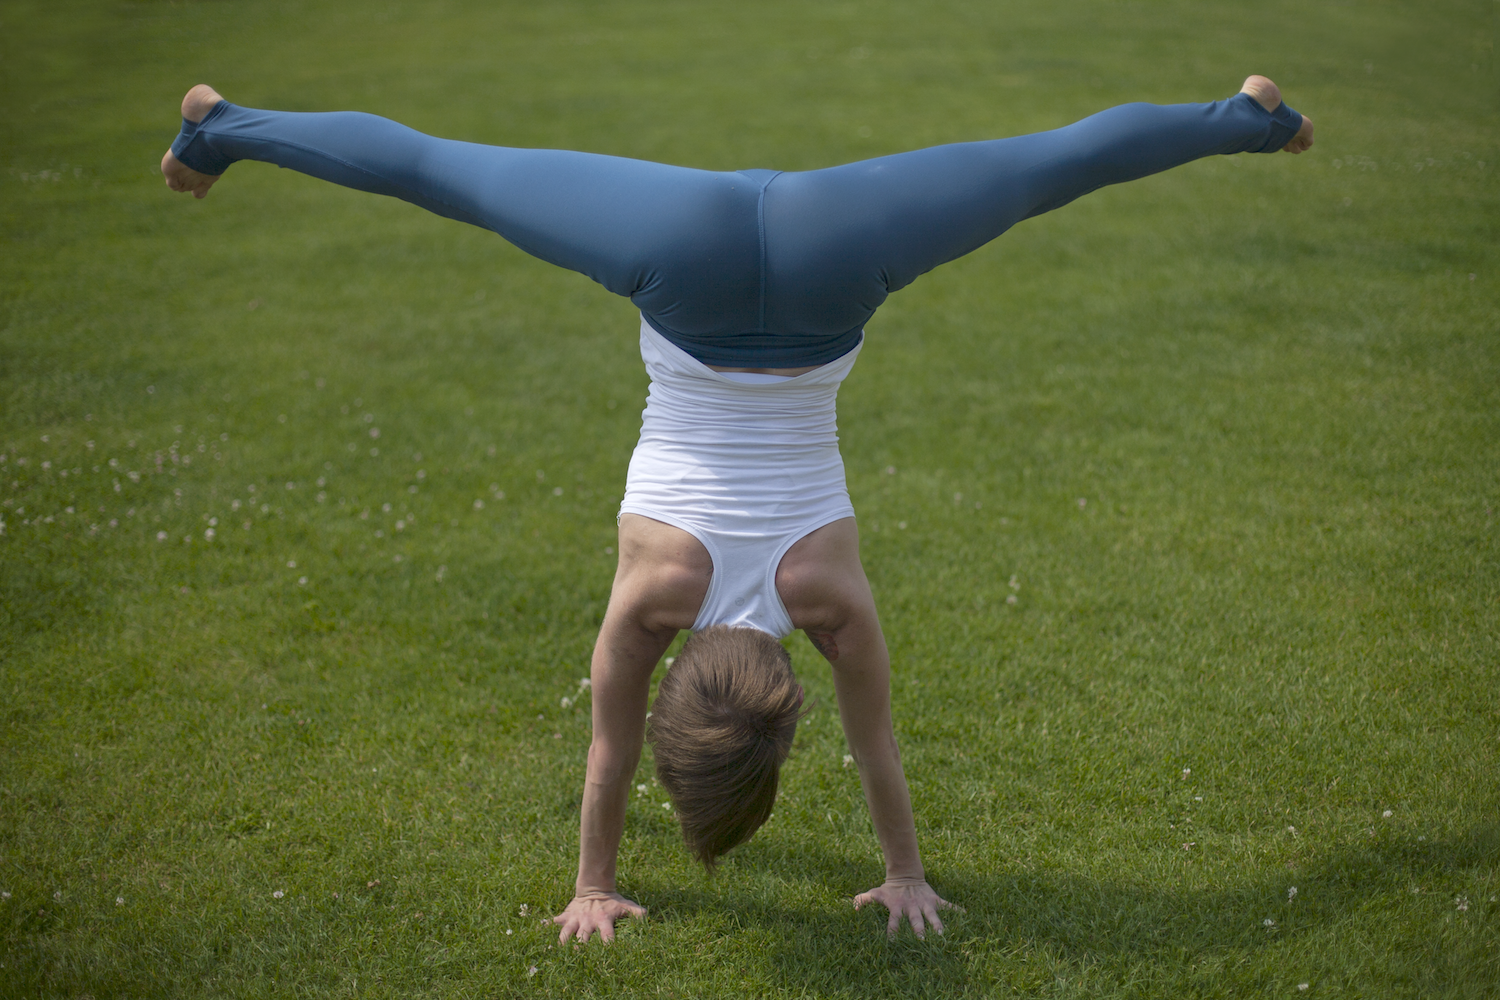 gyongy_handstand